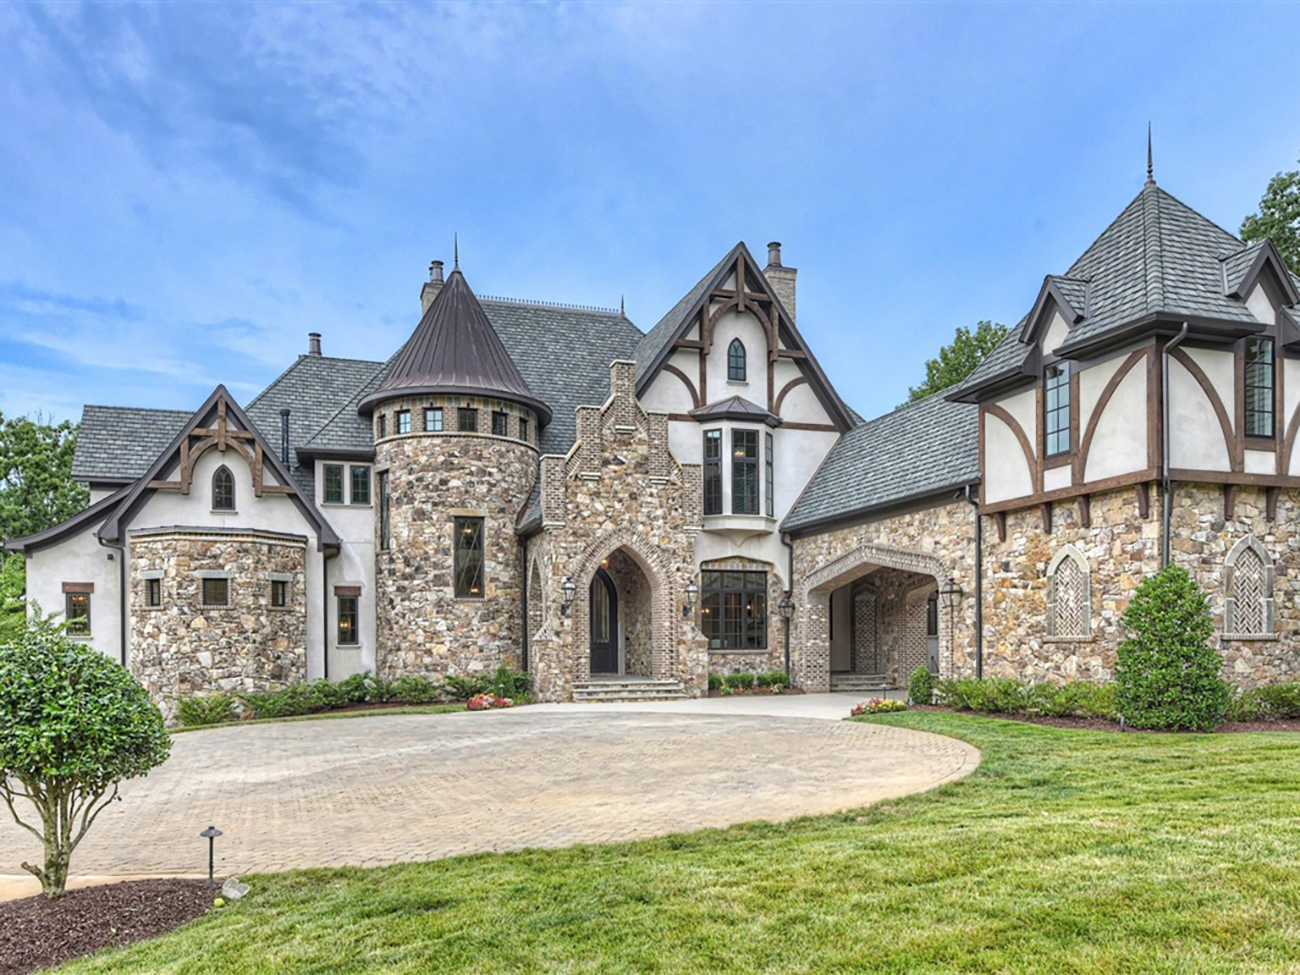 This $8M lakefront castle is the most expensive home for sale in the Charlotte area right now